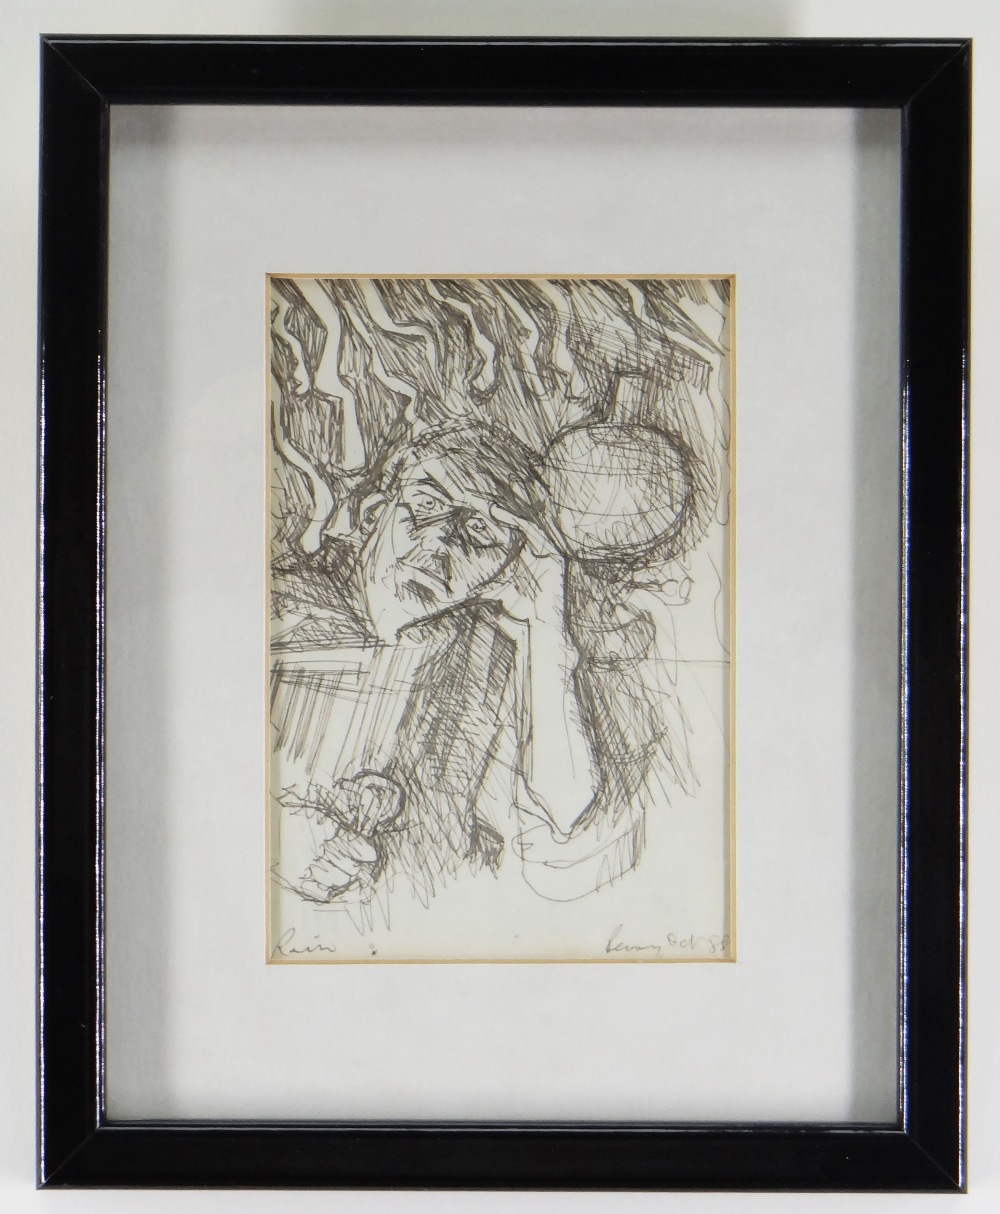 ALAN PERRY pen and ink - figure, entitled 'Rain' and with inscription verso 'A free sketch for you - Image 2 of 2